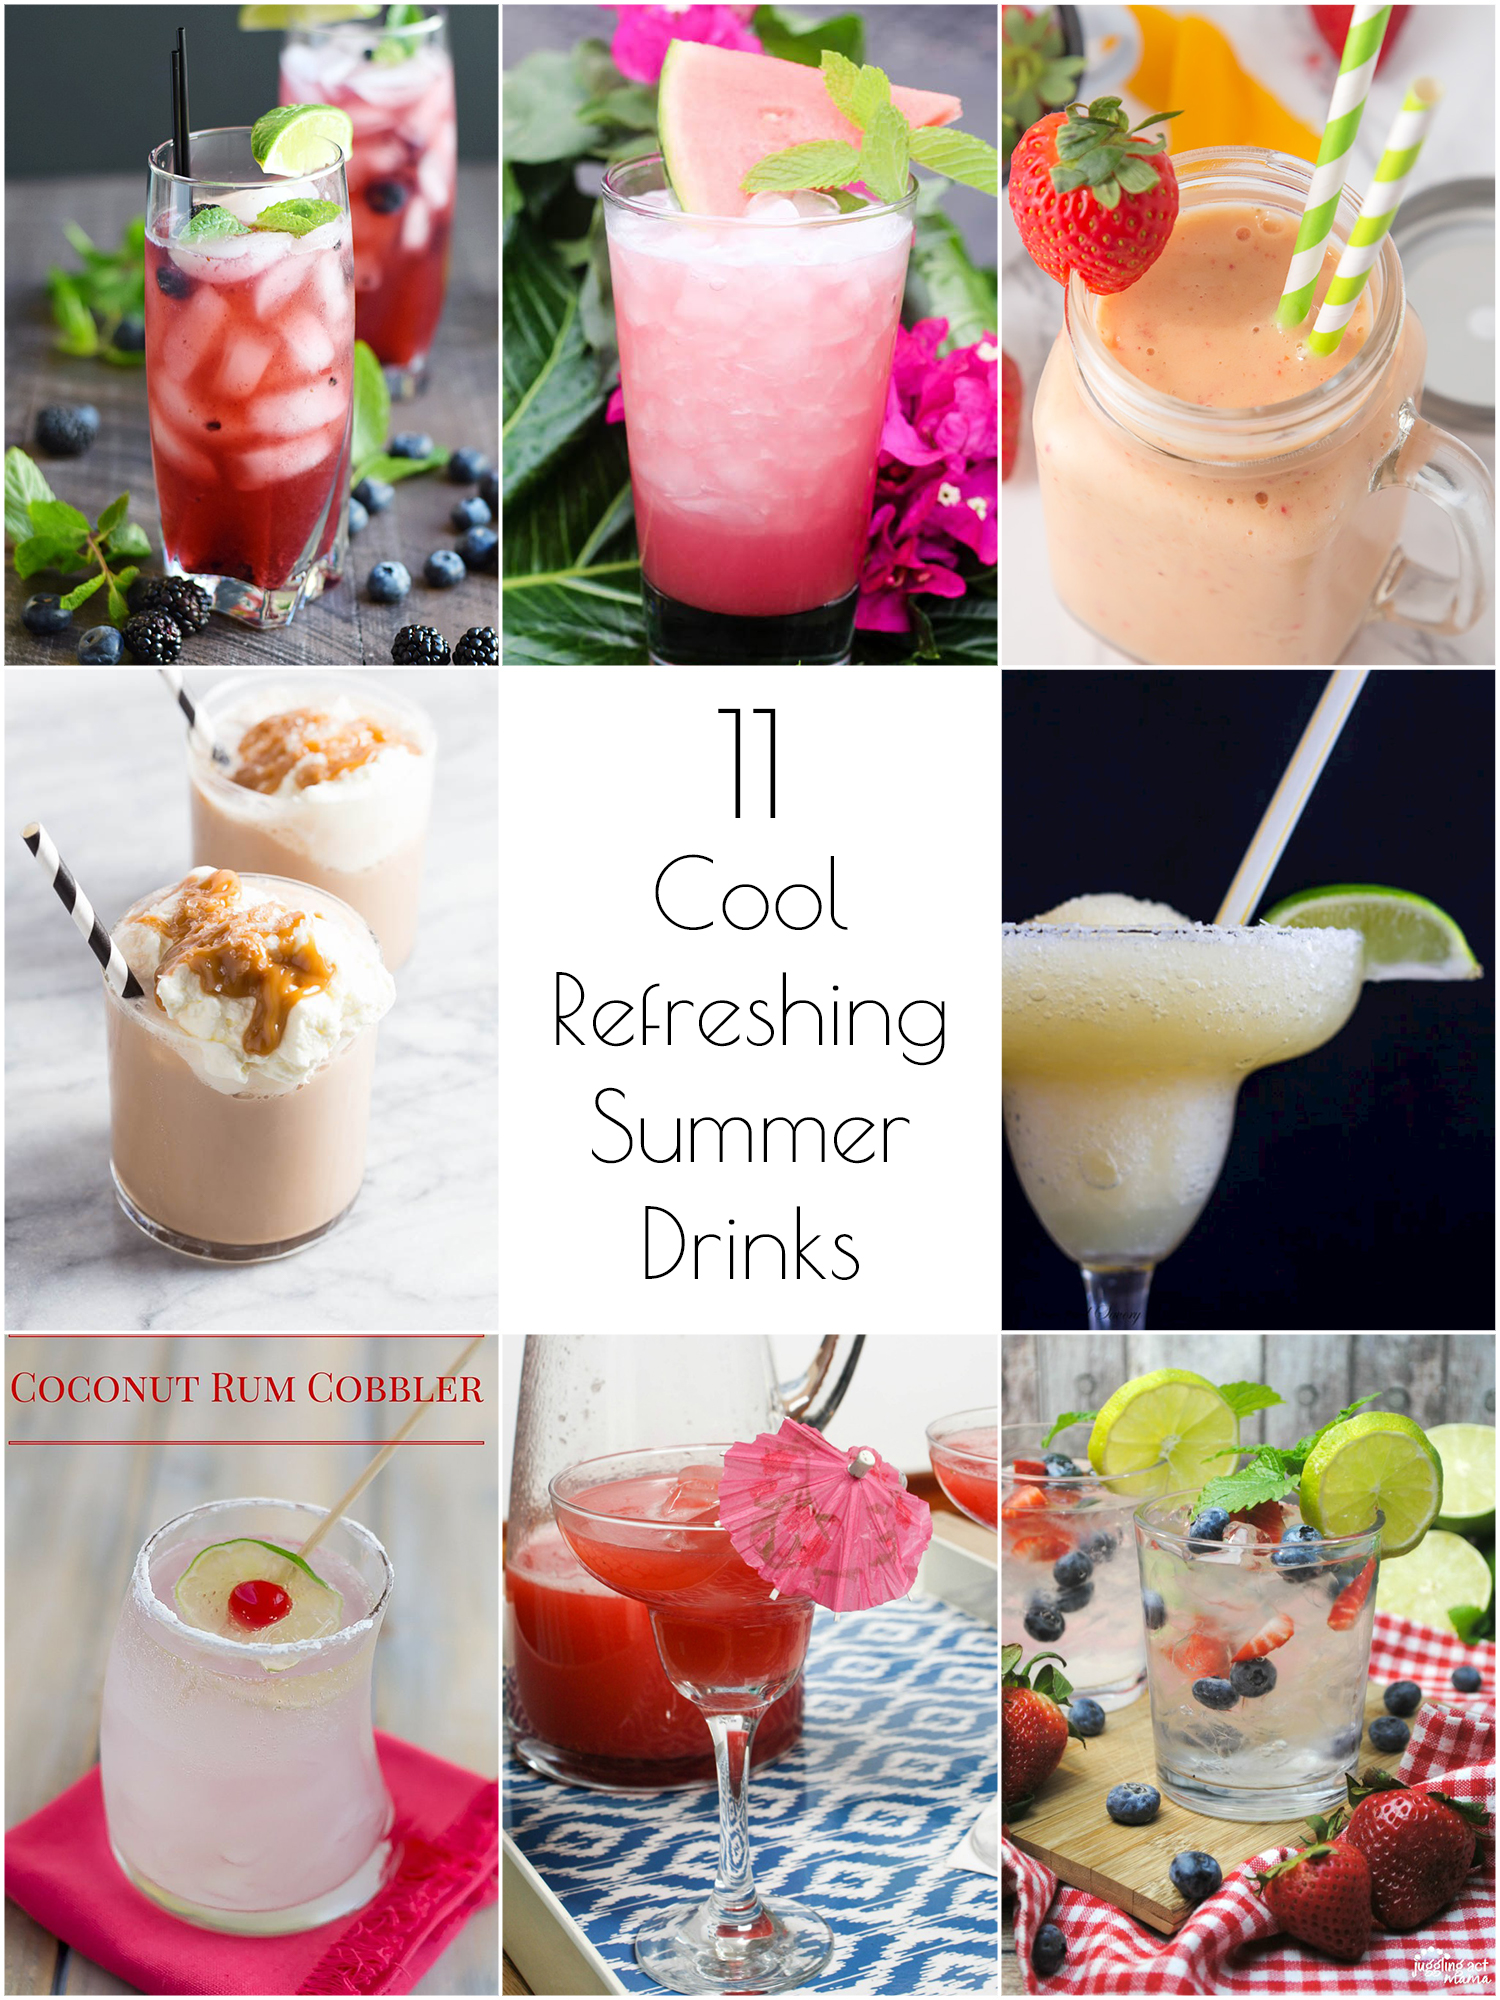 11 Cool, Refreshing Summer Drink Recipes